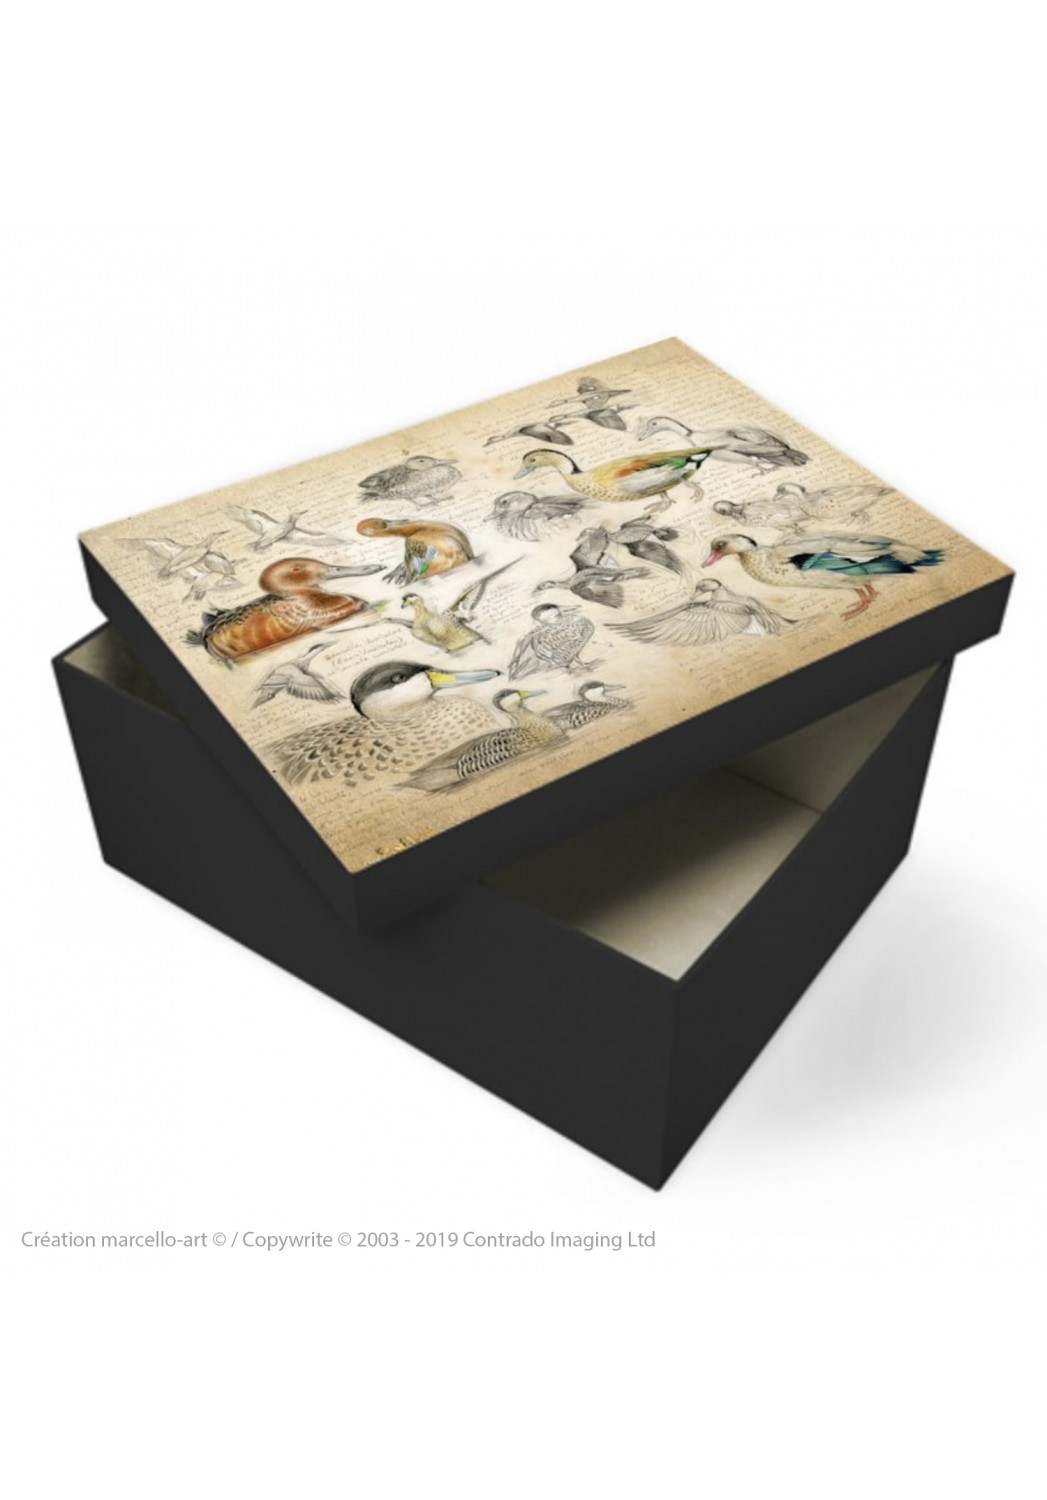 Marcello-art: Decoration accessoiries Souvenir box 239 Cinnamon teal, from Brazil, spotted and versicolor